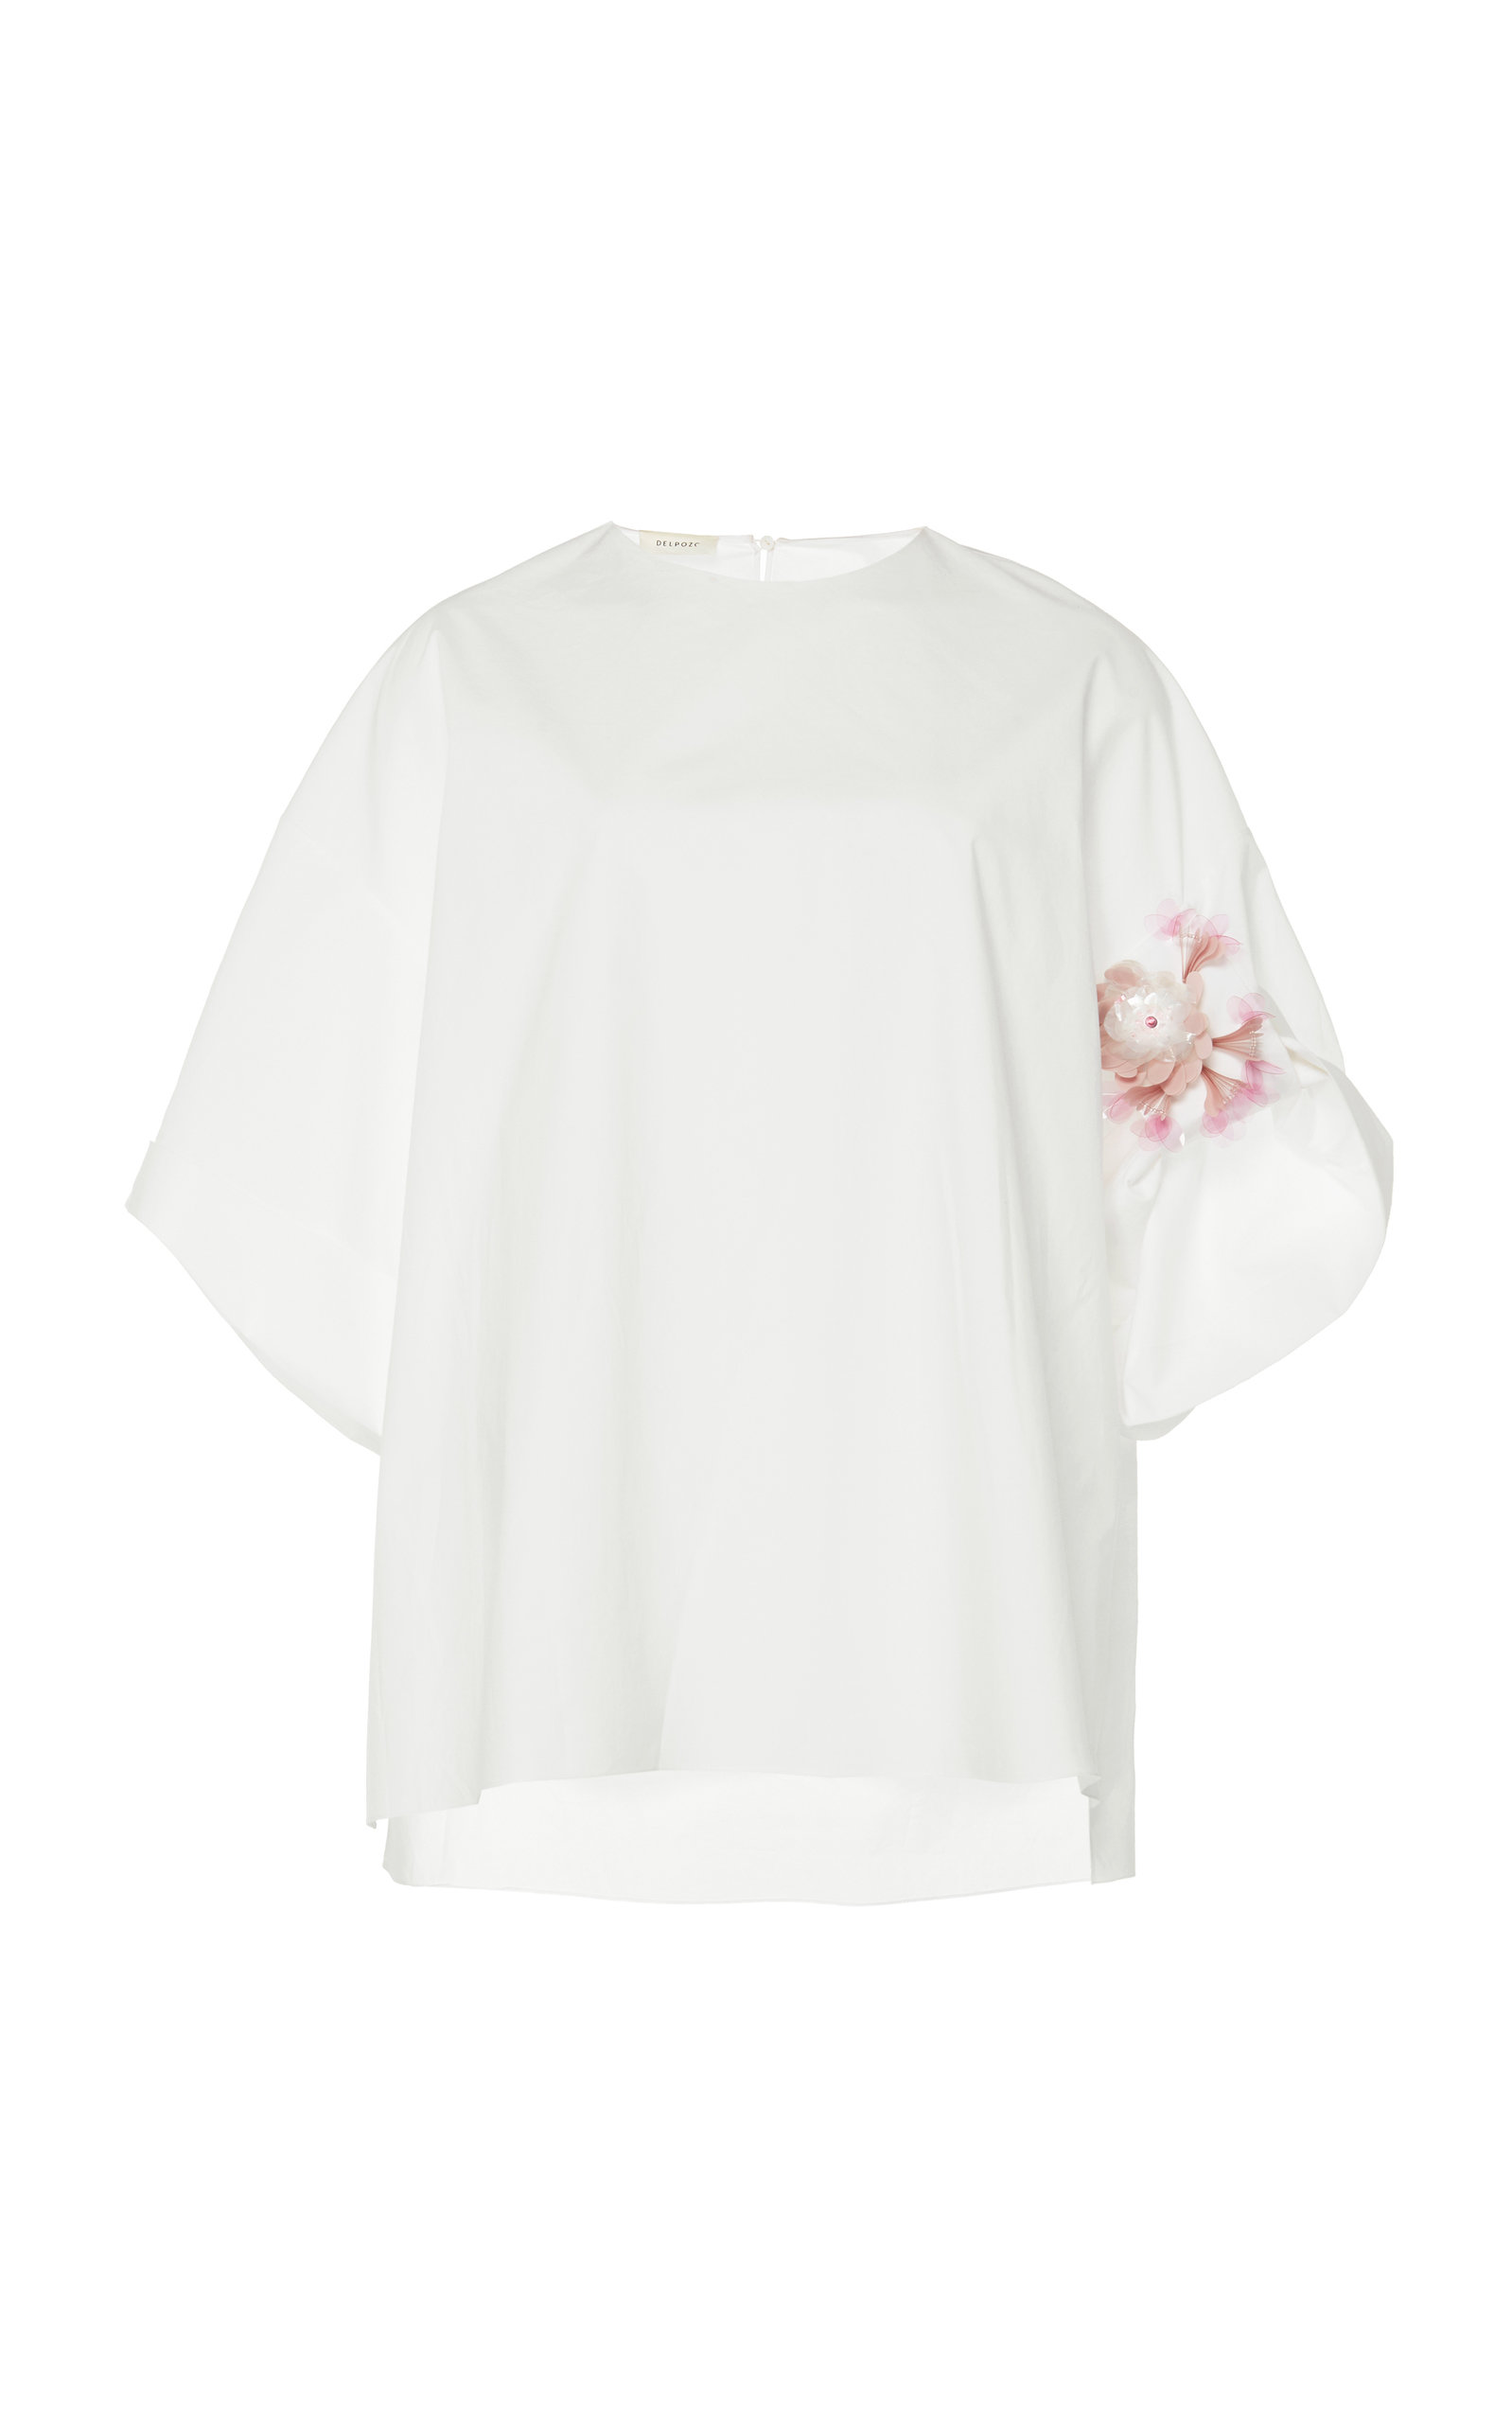 Poplin Embroidered Shirt Delpozo Cheap Sale Cheapest Outlet Shop For MehlJXAA